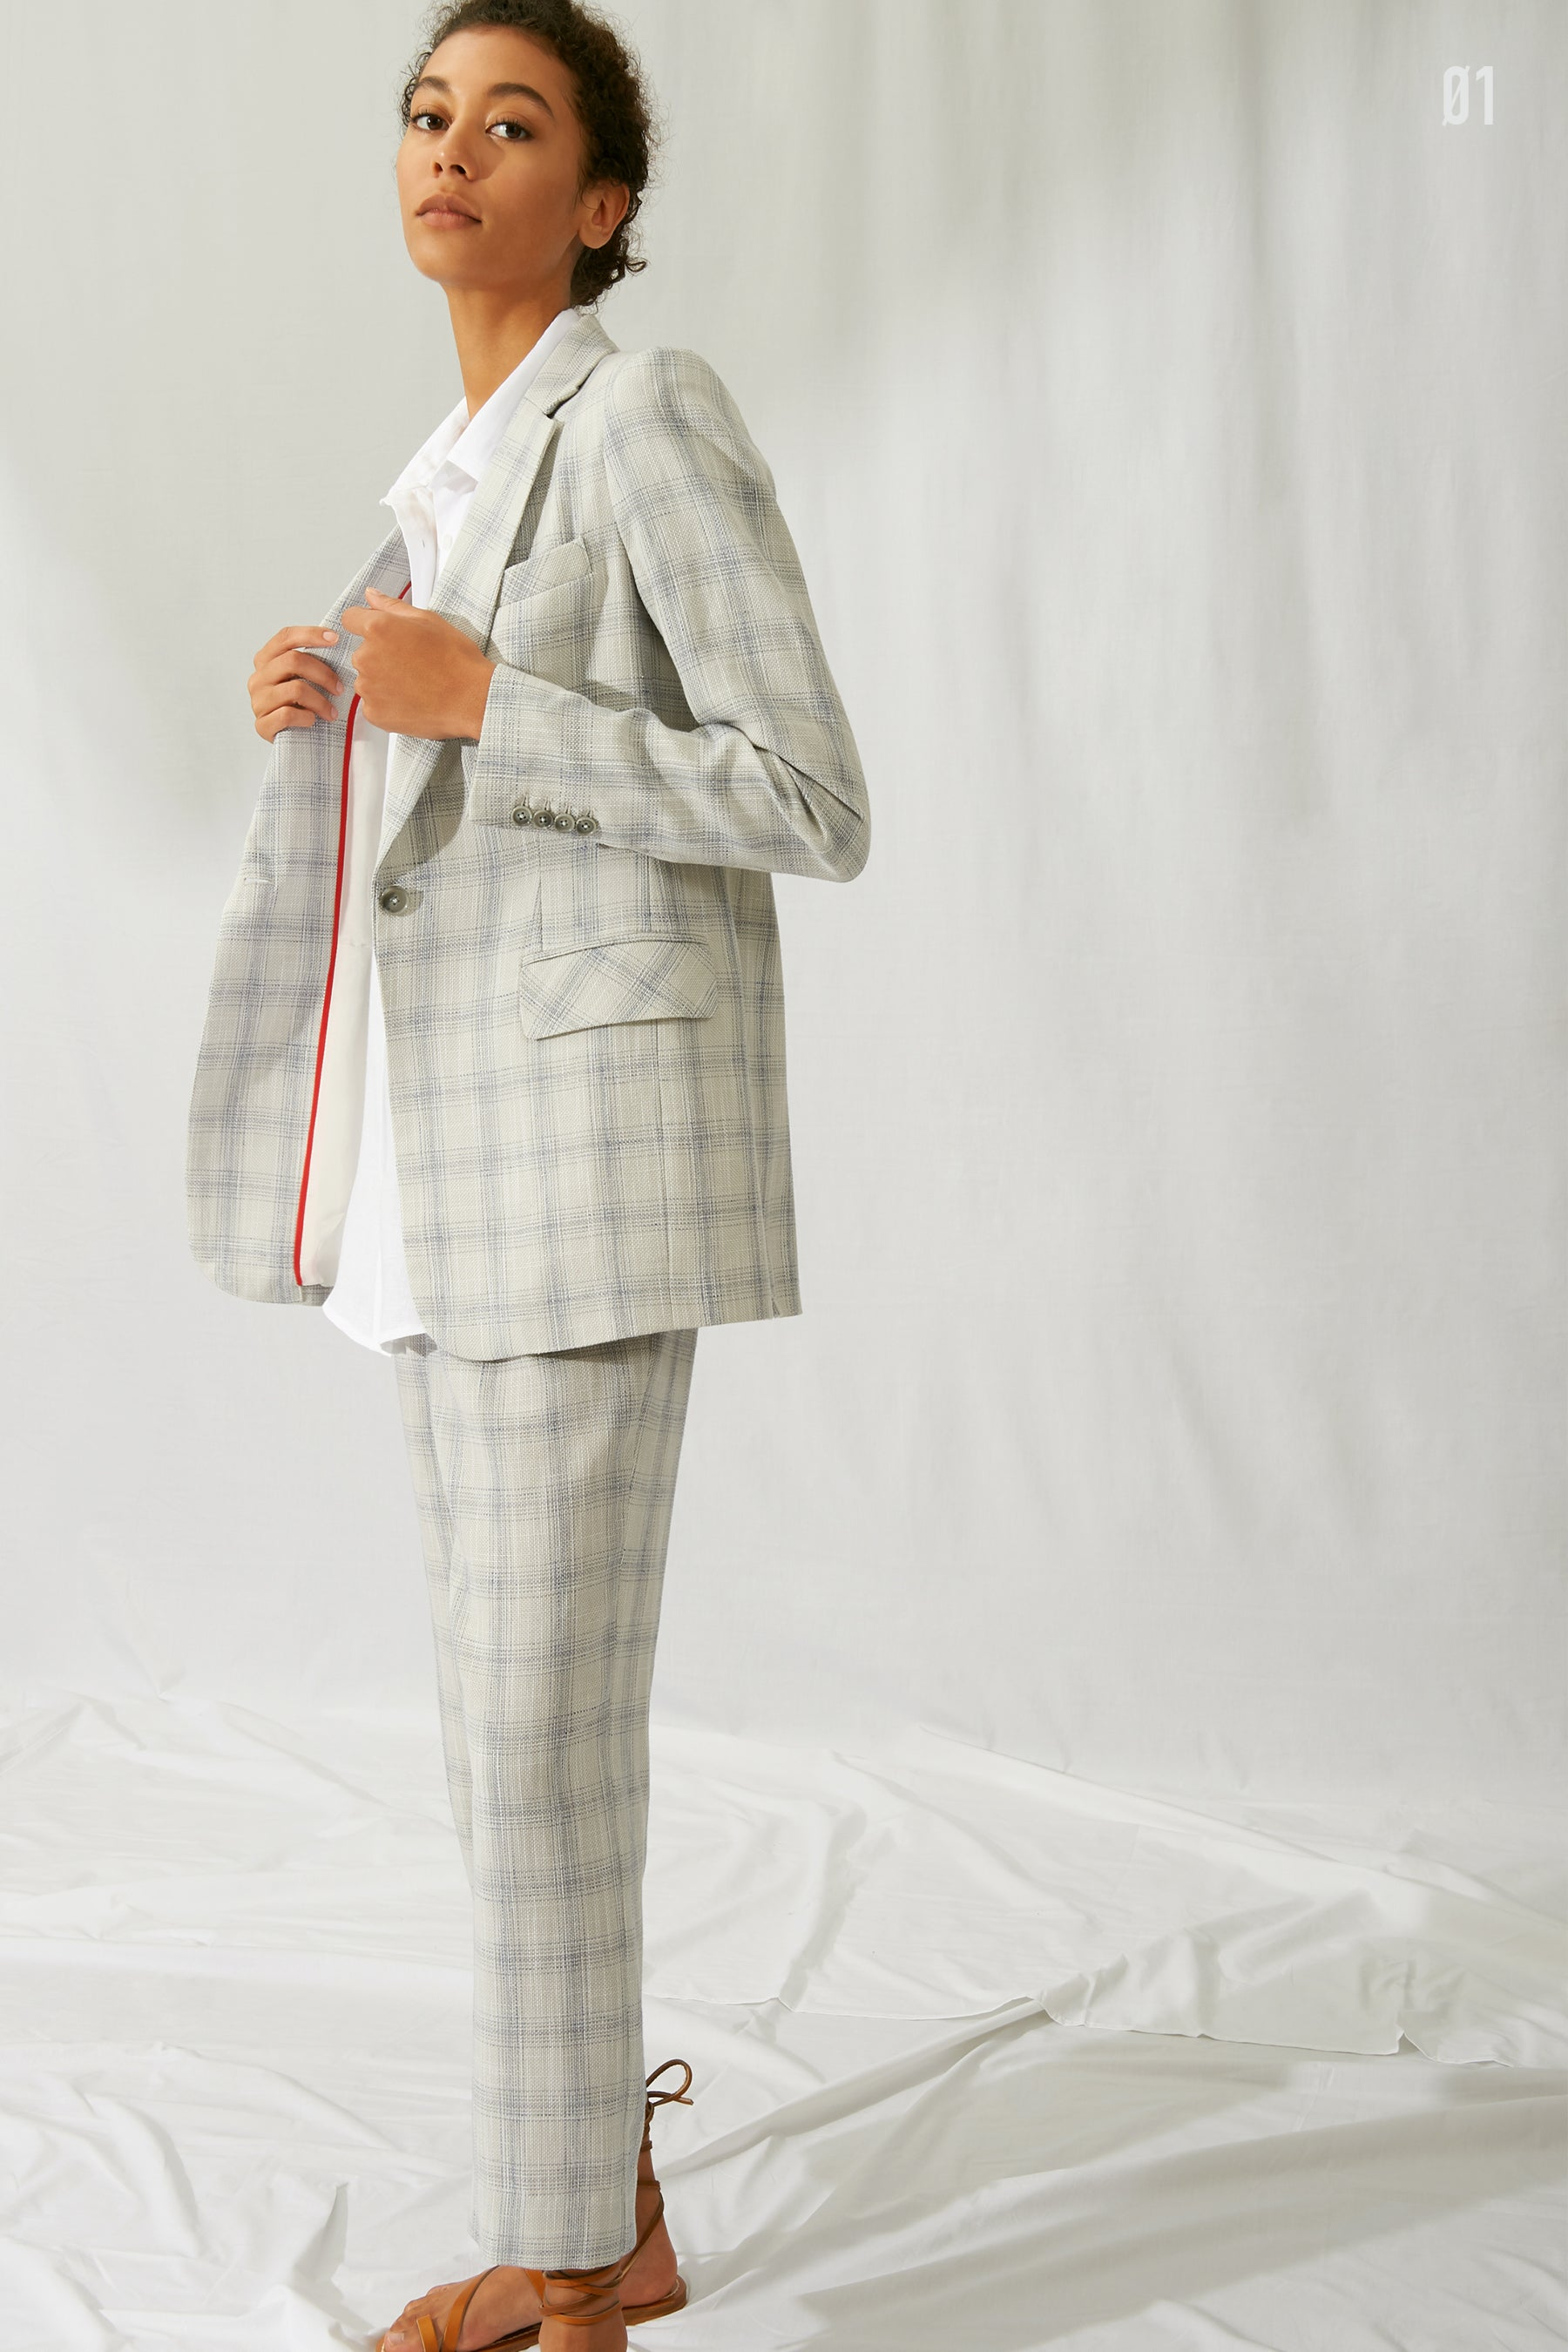 Kal Rieman Spring 2020 Lookbook Look 1